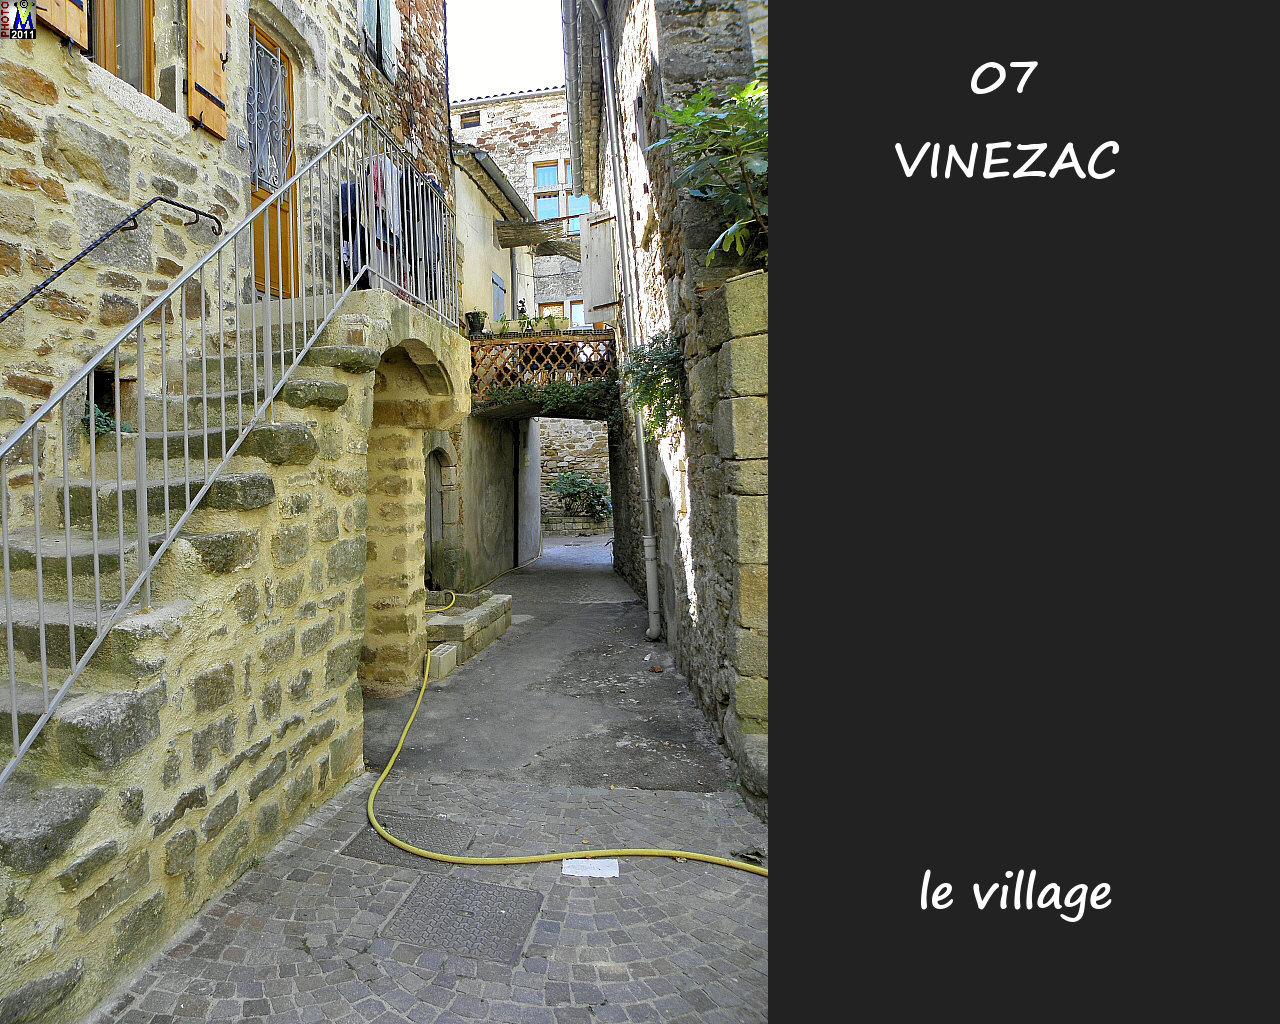 07VINEZAC_village_160.jpg